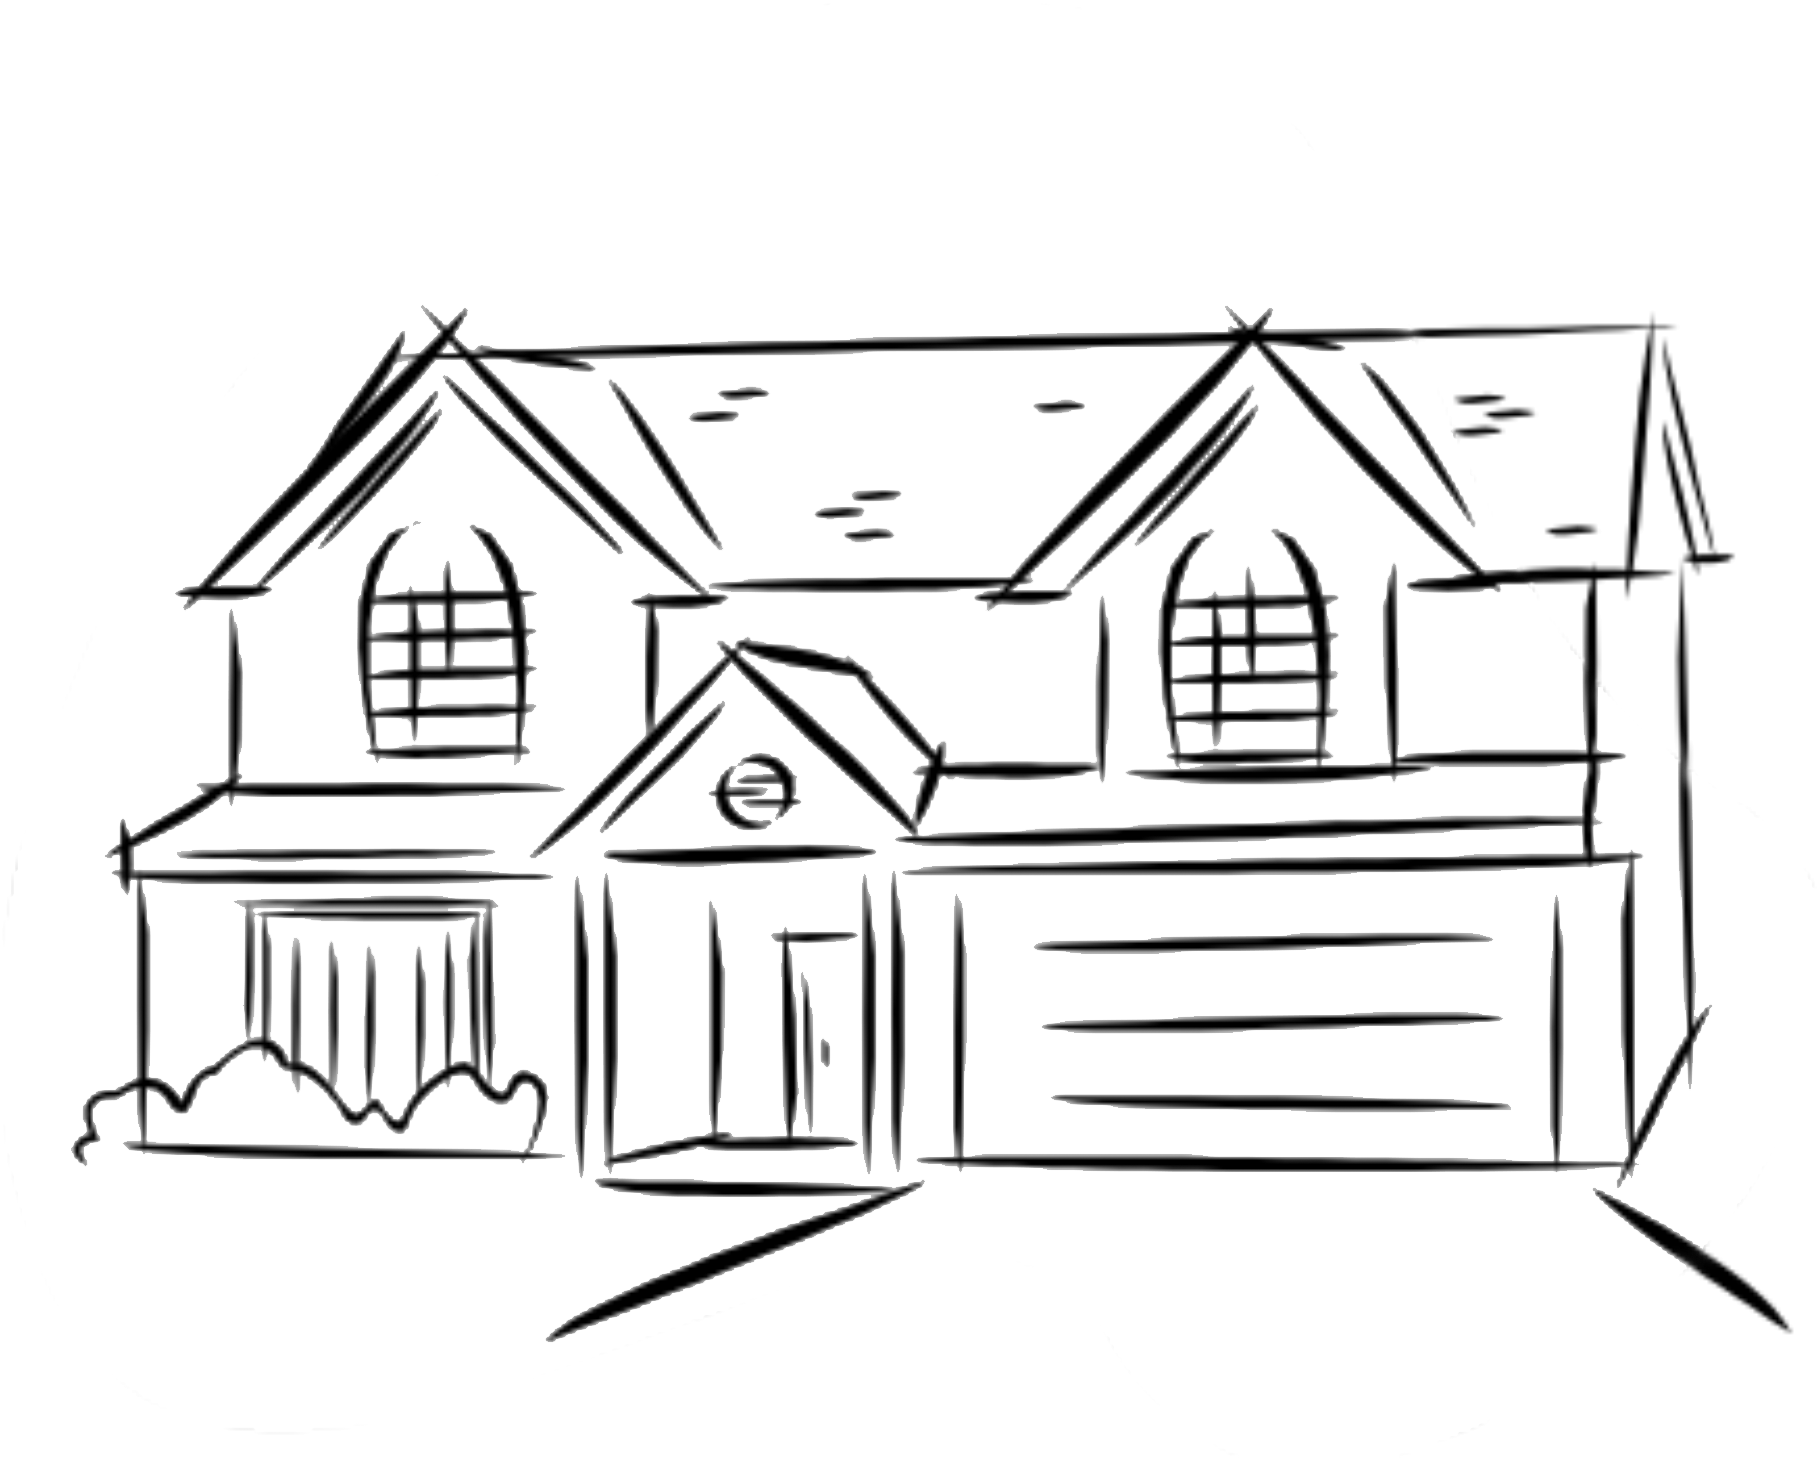 Clipart pencil simple. House drawing at getdrawings